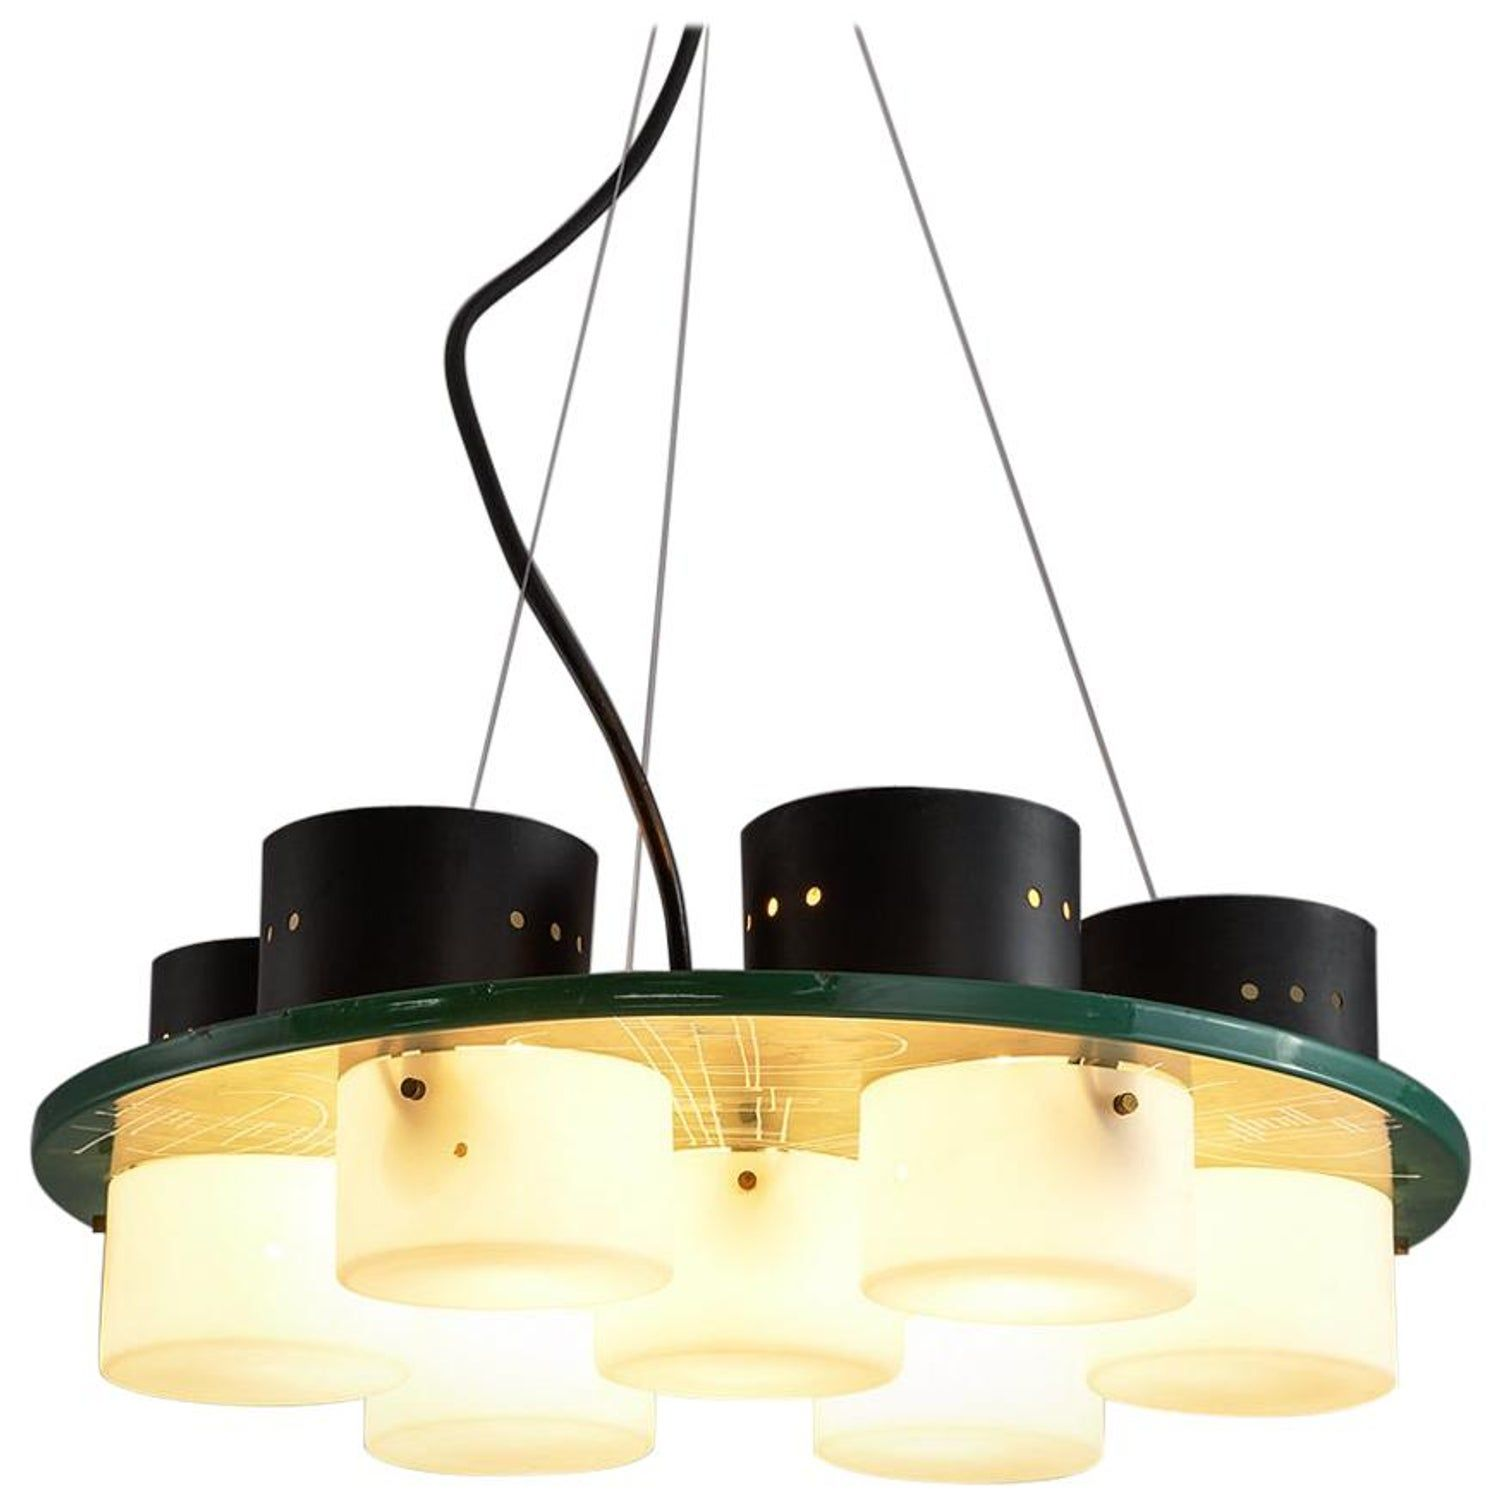 Italian Ceiling Light with Six Shades